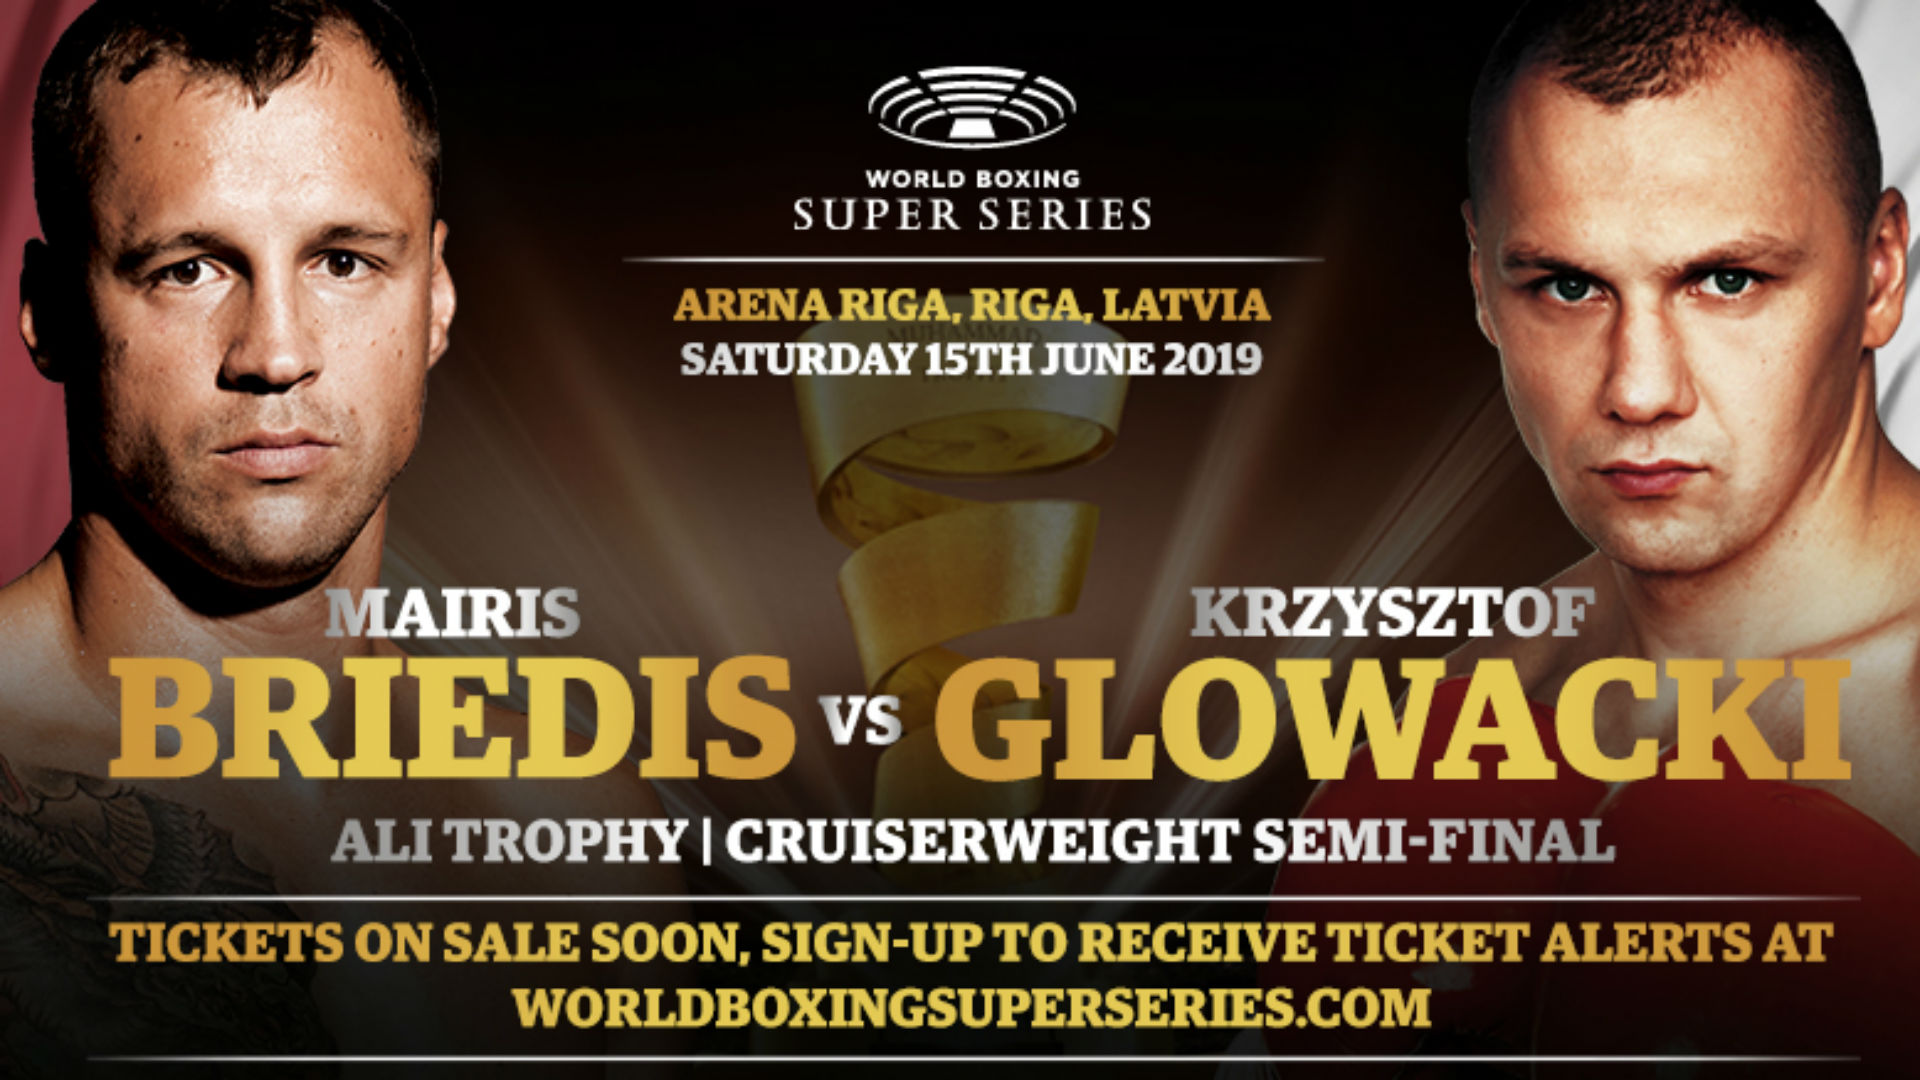 WBSS 2: Briedis vs. Glowacki fight set for June 15 in Latvia